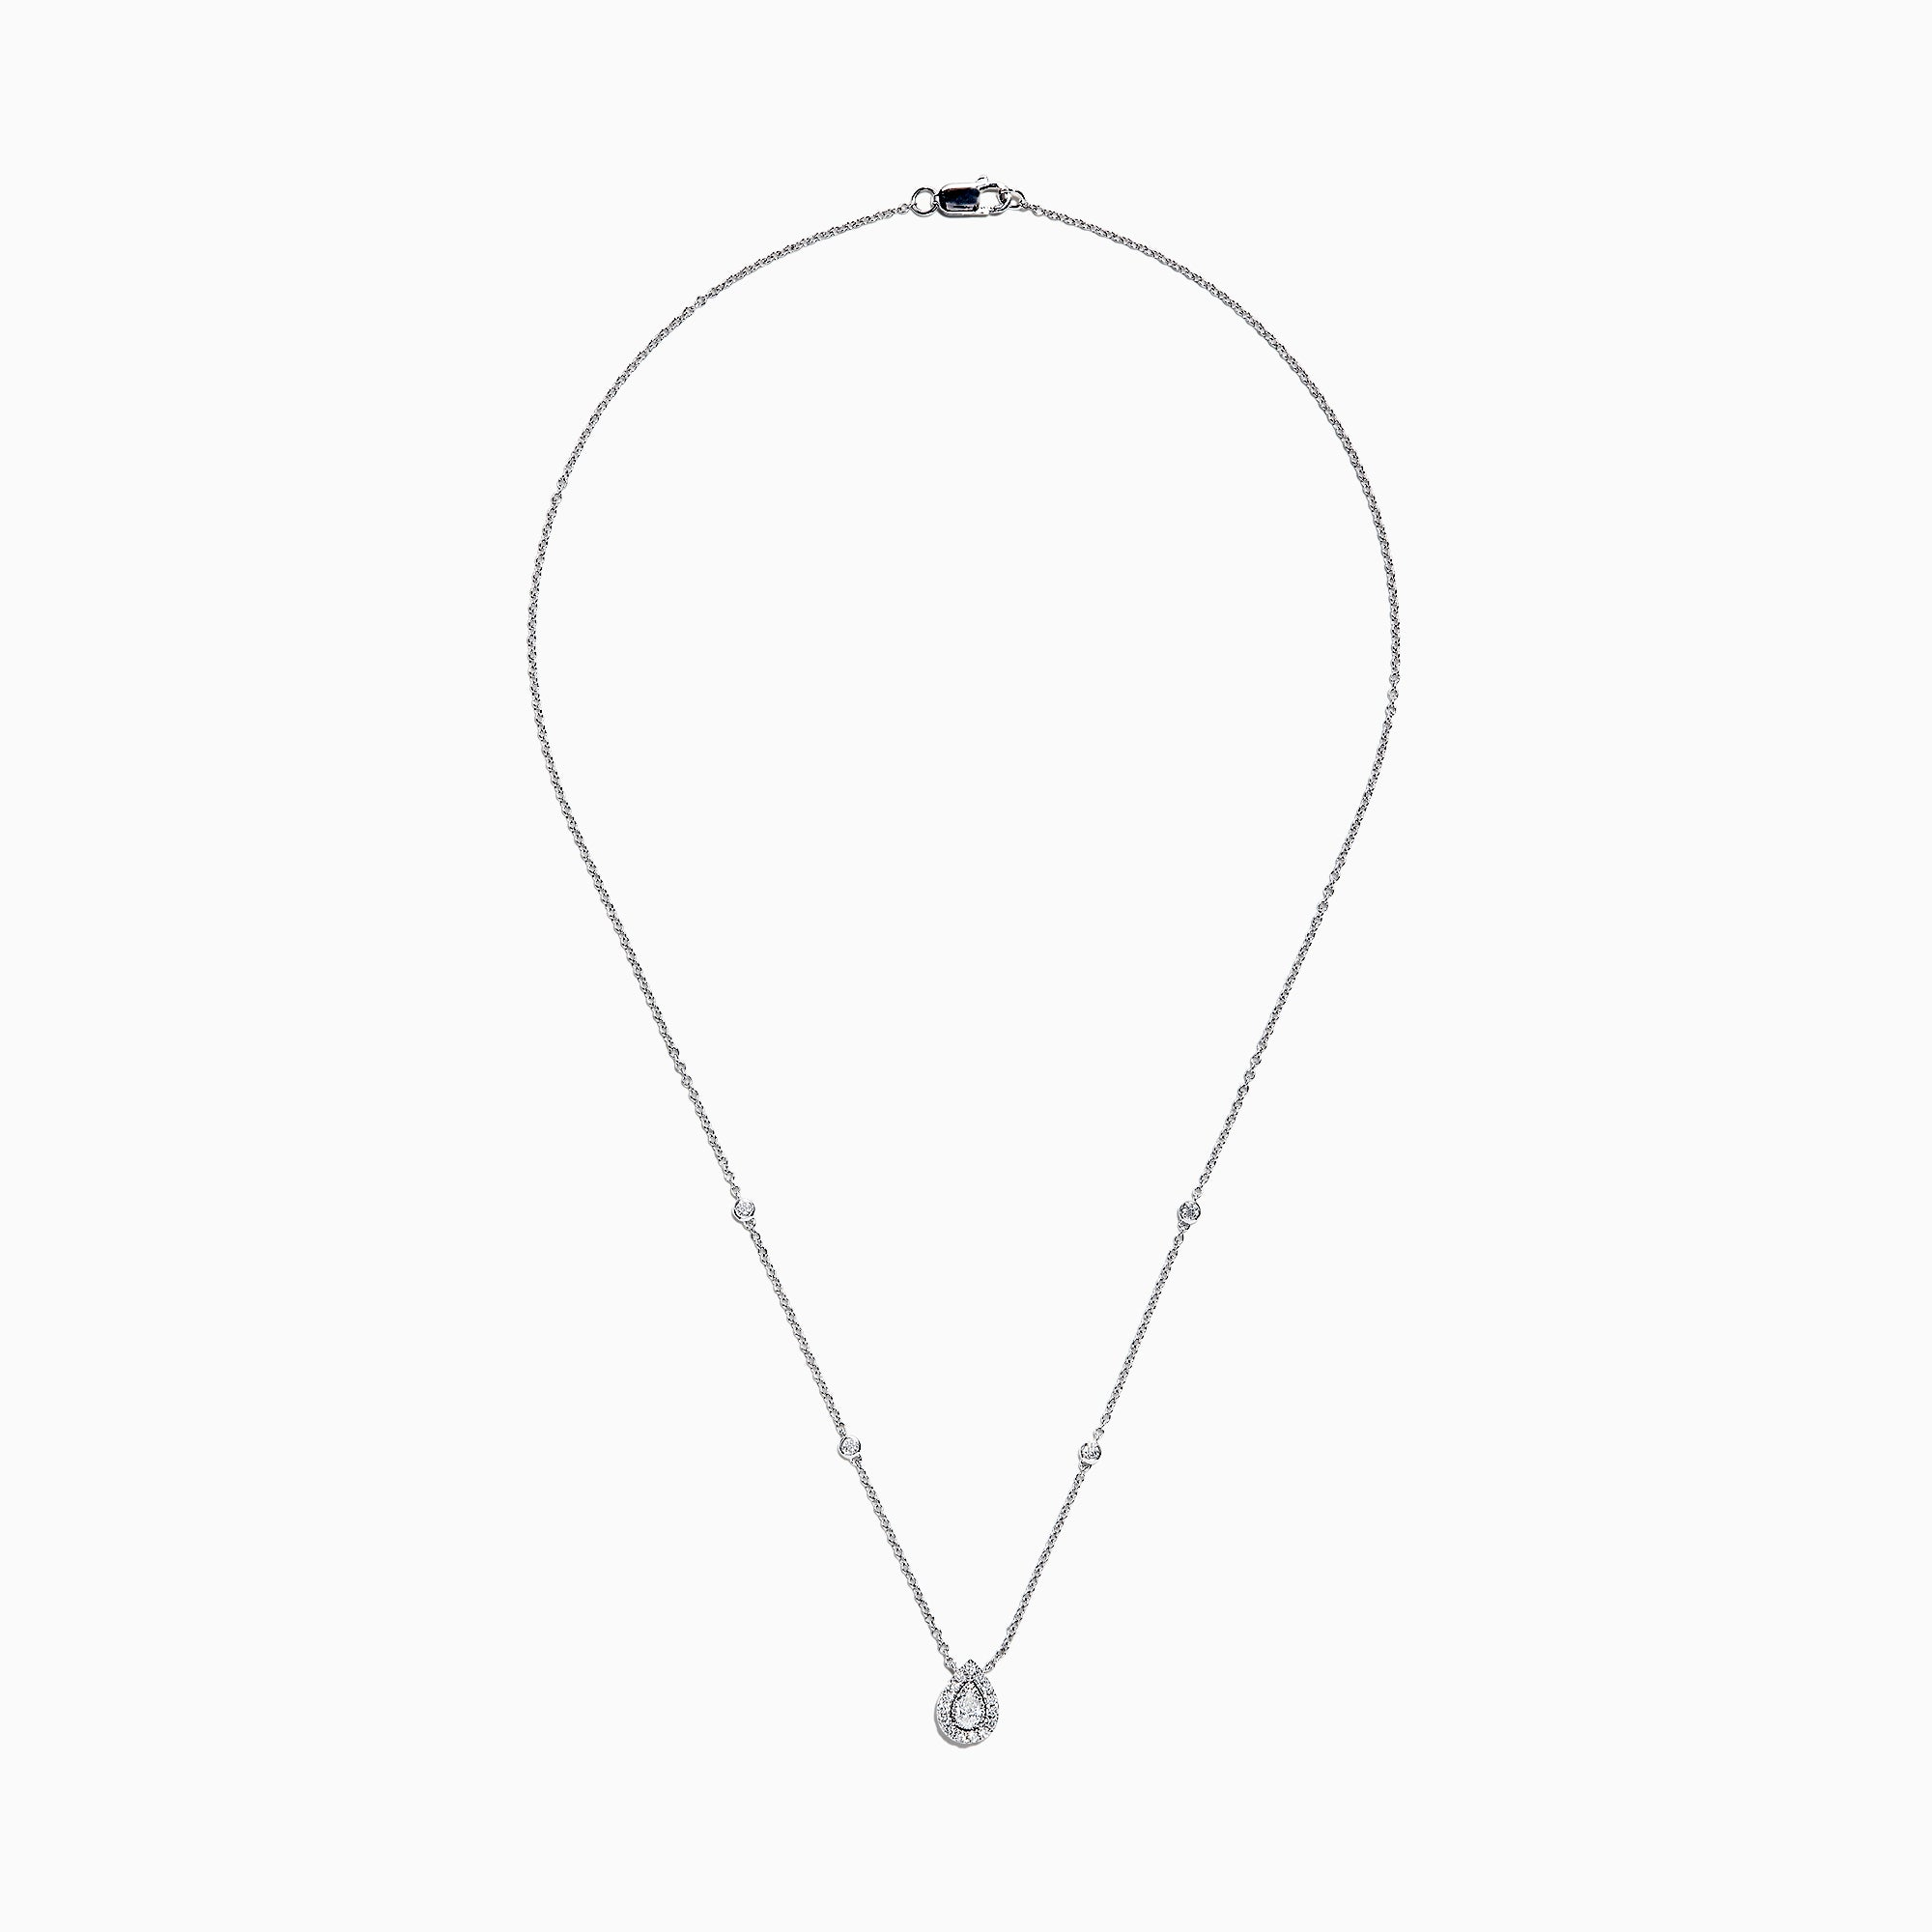 Effy Pave Classica 14K White Gold Diamond Pear Shaped Necklace, 0.38 TCW